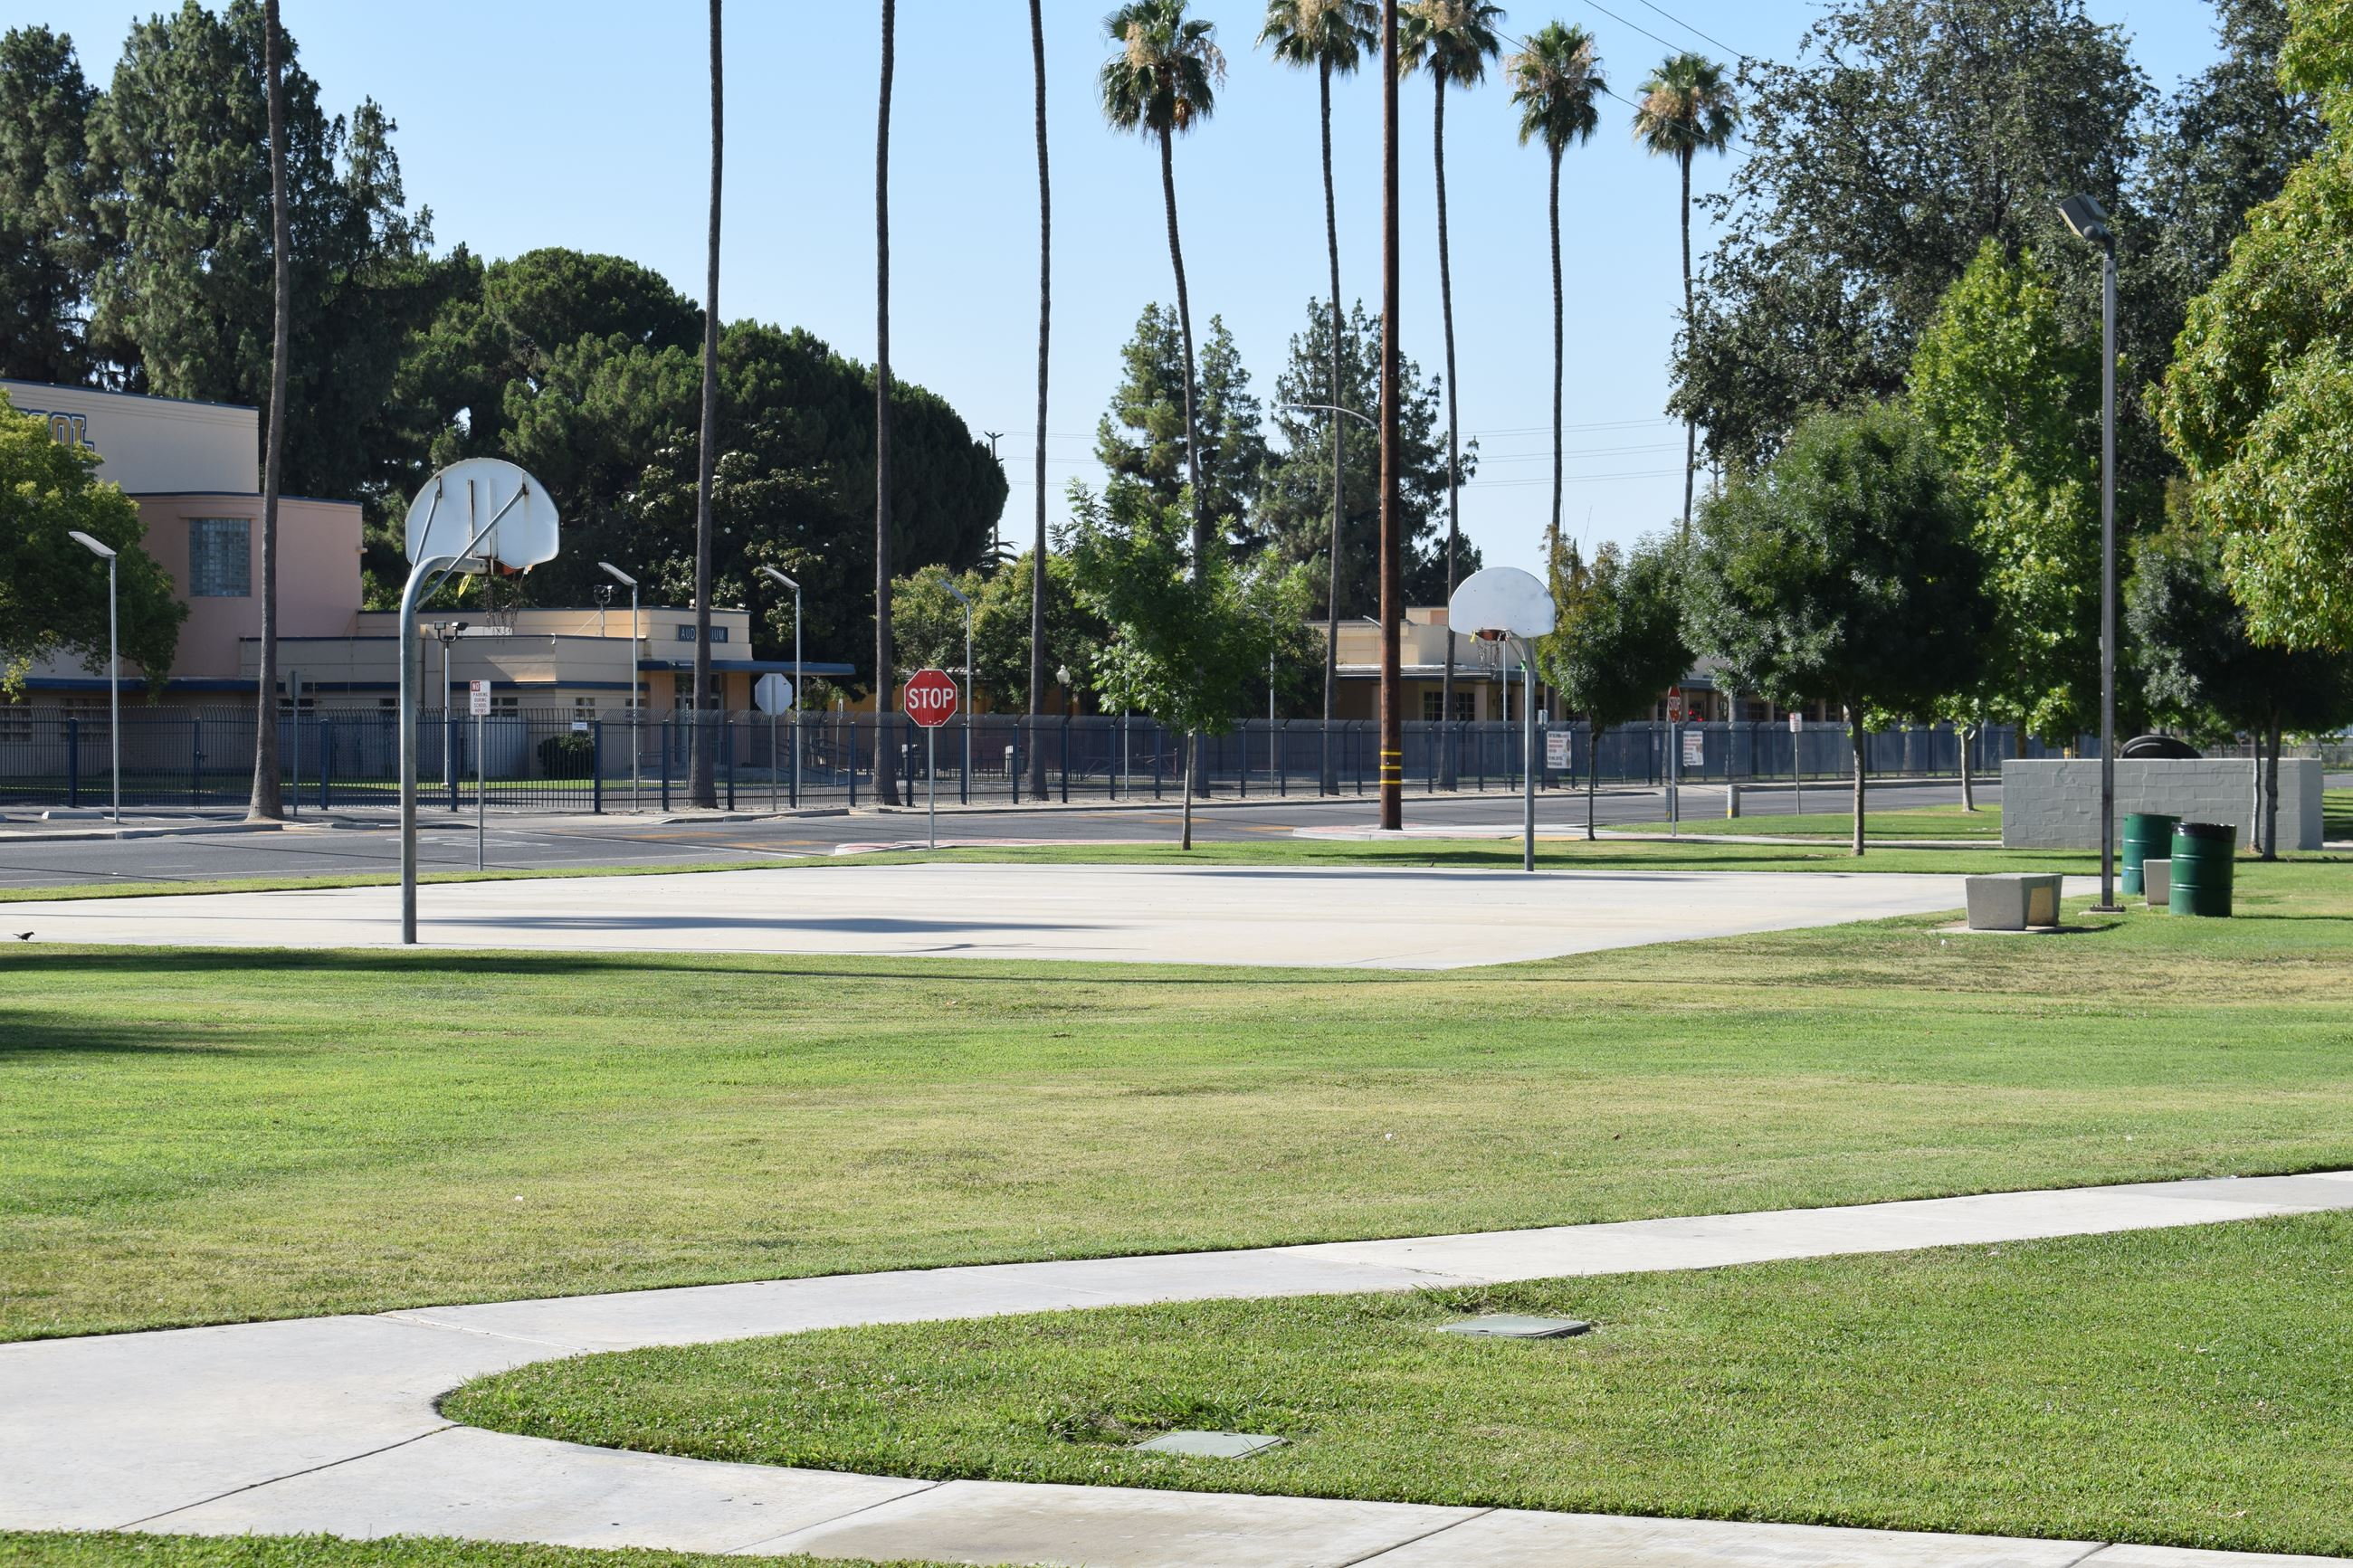 Cecil Park North basketball court